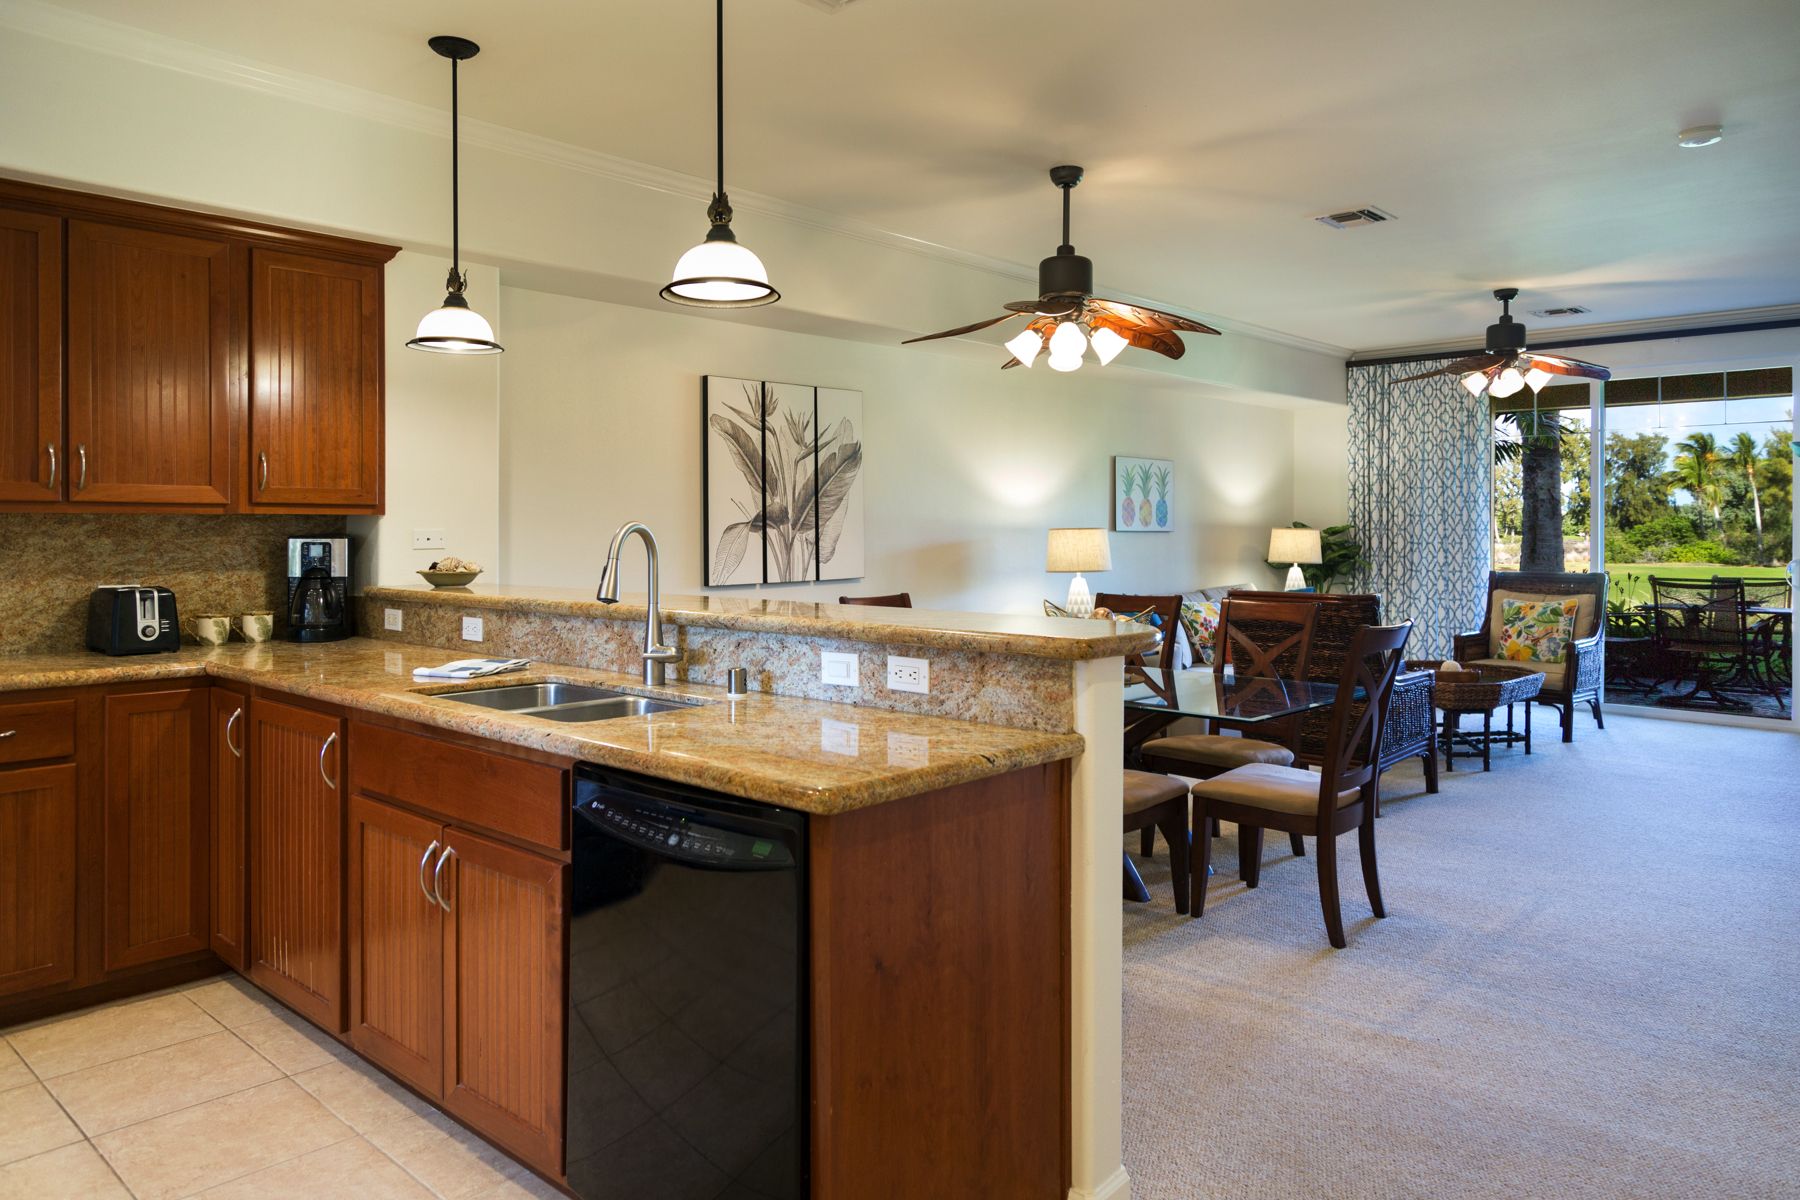 Townhouse for Active at Waikoloa Beach Resort 69-180 Waikoloa Beach Dr. #M3 Waikoloa, Hawaii 96738 United States